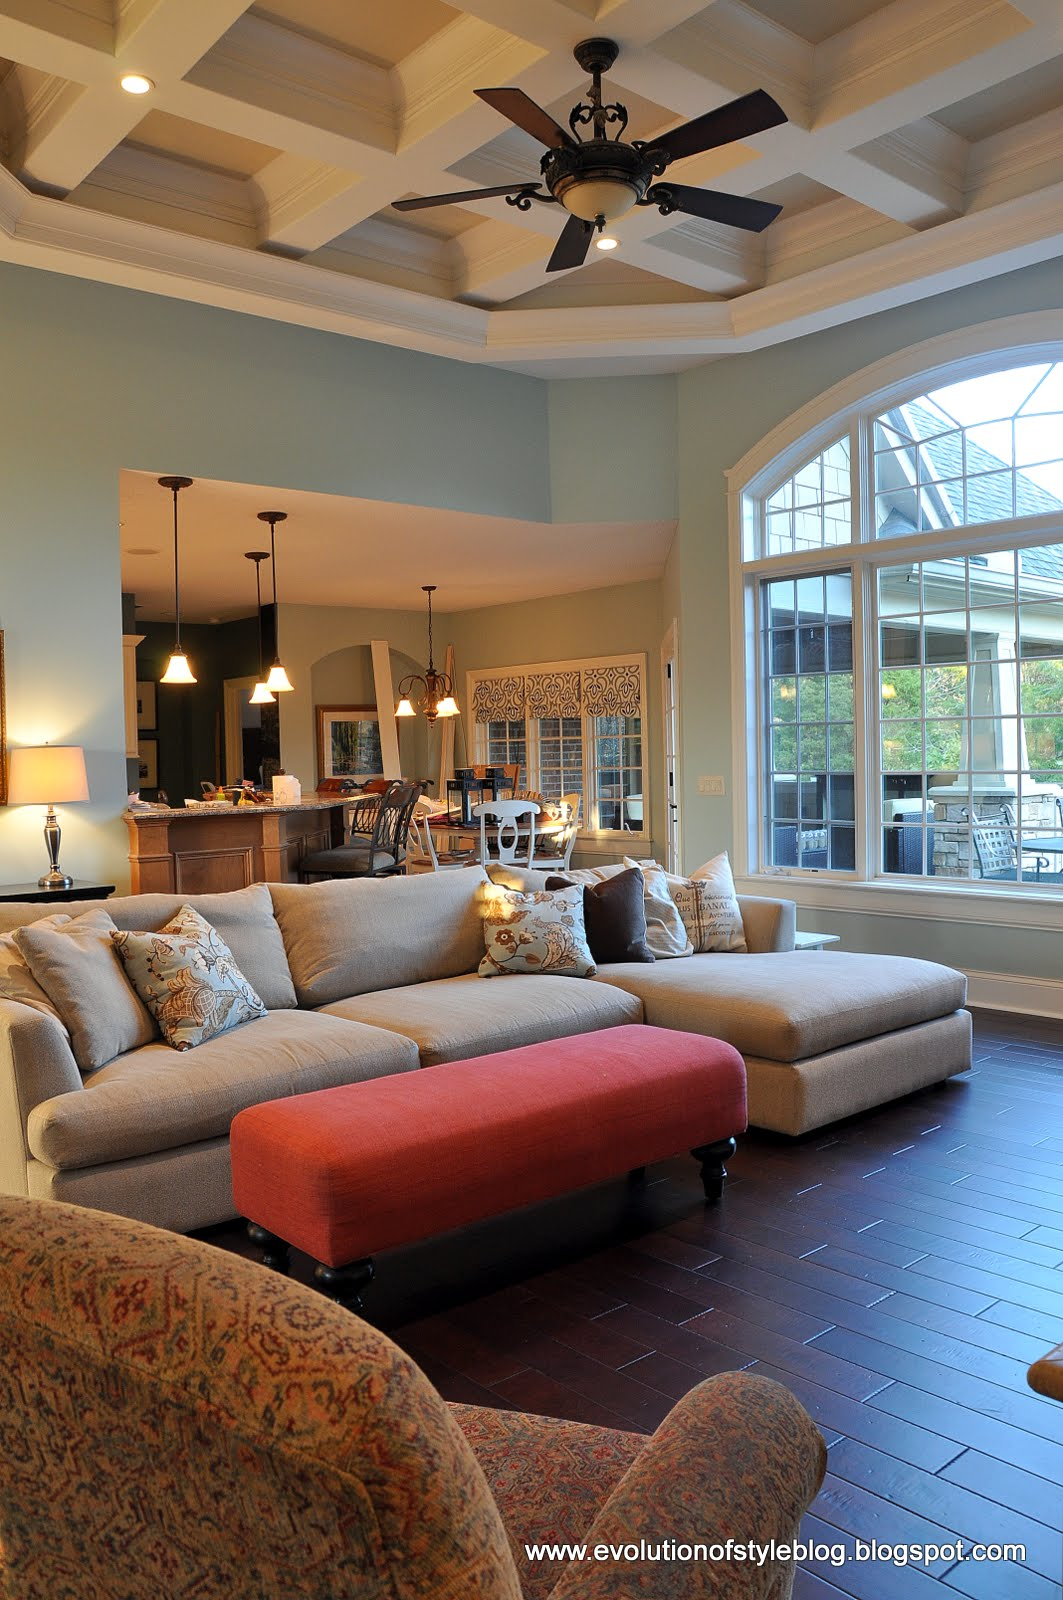 Our paint colors evolution of style - Benjamin moore palladian blue living room ...